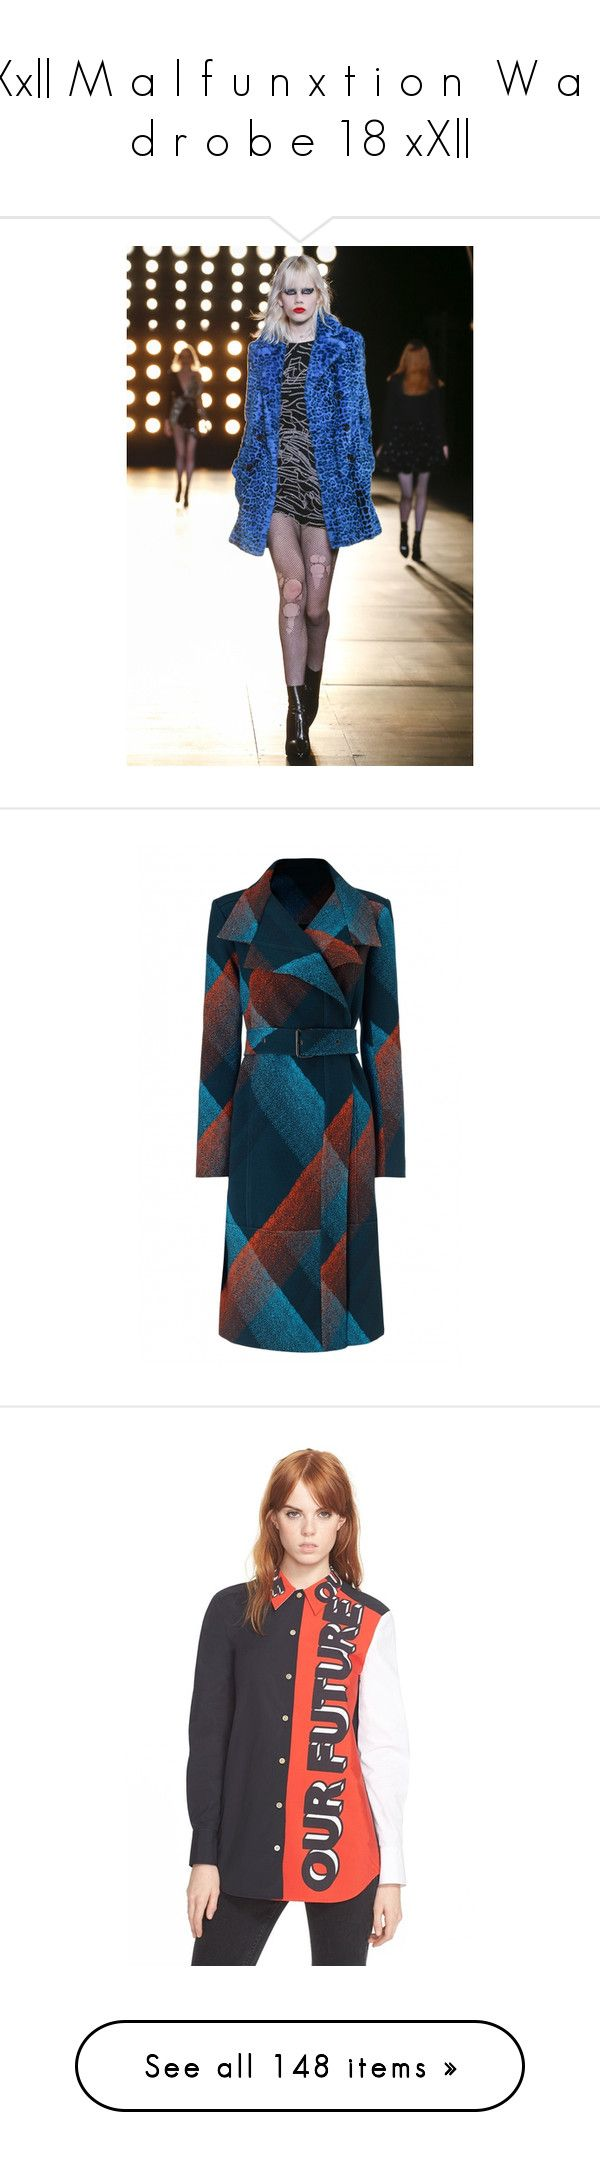 """""""Xx   M a l f u n x t i o n  W a r d r o b e 18 xX  """" by the-anon-side ❤ liked on Polyvore featuring outerwear, coats, jackets, coats & jackets, пальто, knee length coat, blue coat, blue trench coats, knee length trench coat and roland mouret"""